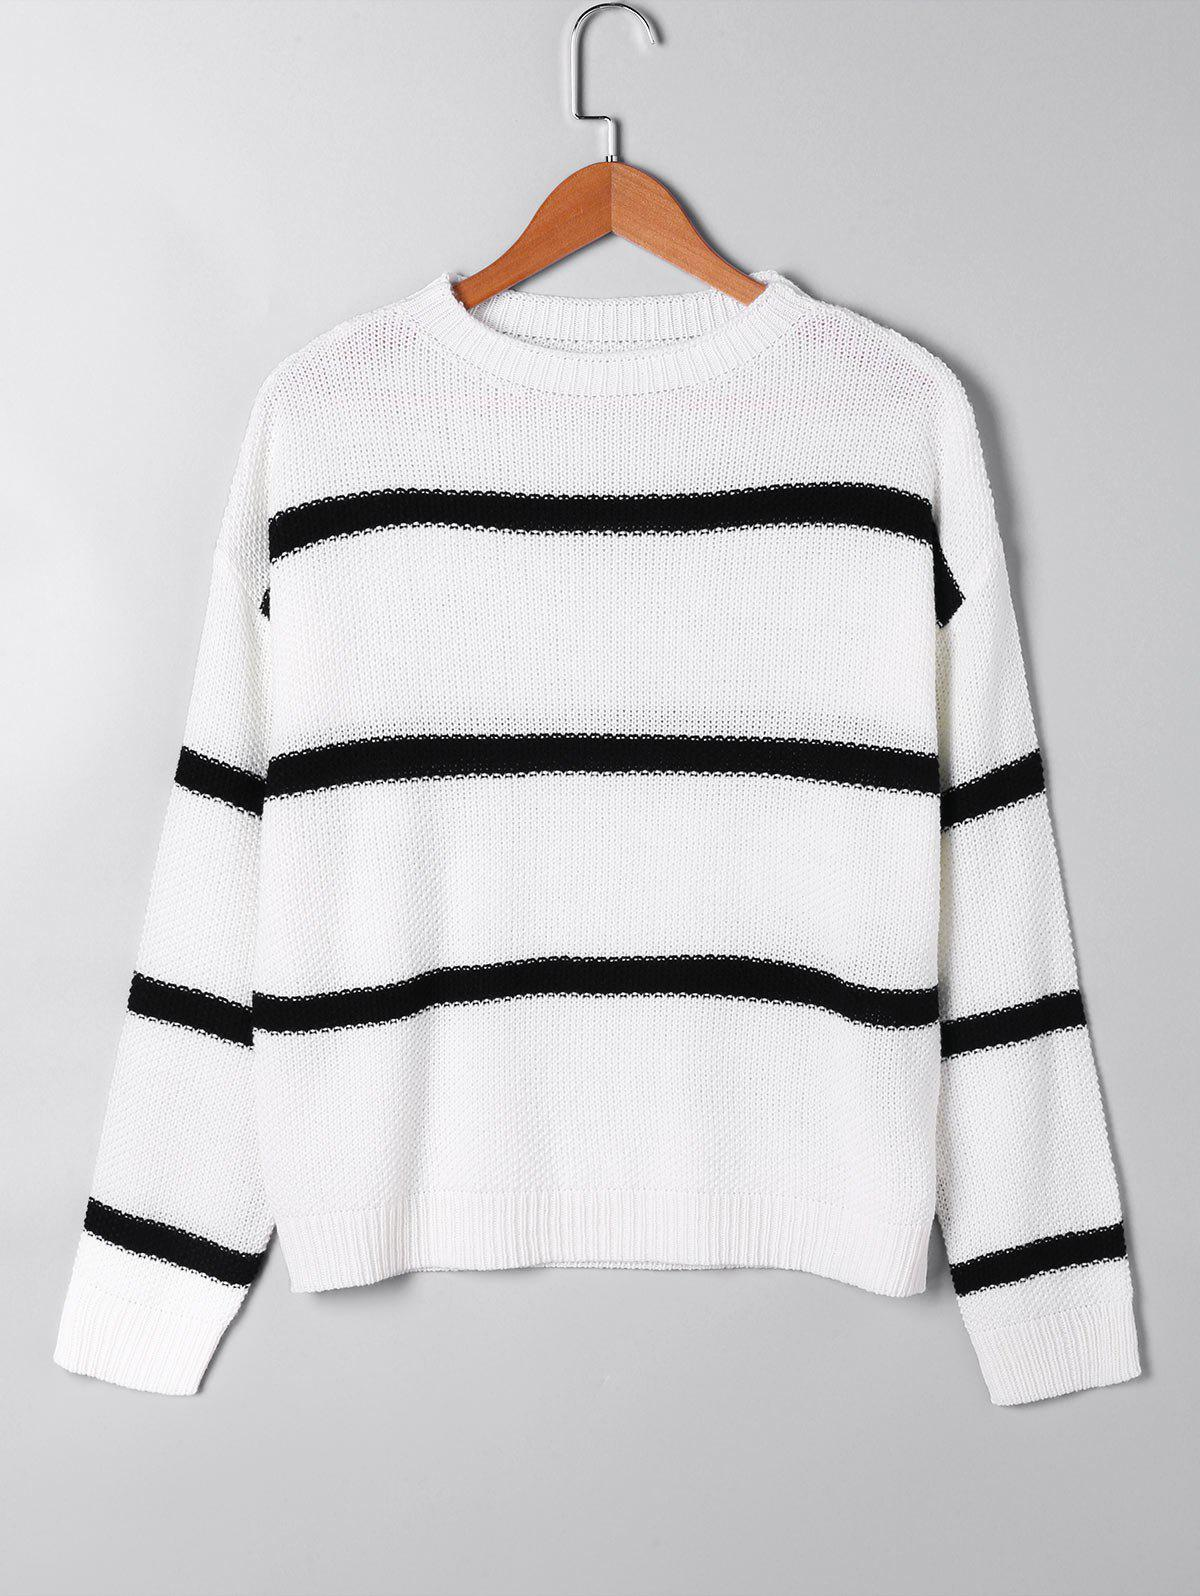 Two Tone Open Knitted SweaterWOMEN<br><br>Size: S; Color: WHITE; Type: Pullovers; Material: Acrylic; Sleeve Length: Full; Collar: Crew Neck; Style: Casual; Pattern Type: Striped; Season: Fall,Spring; Weight: 0.3000kg; Package Contents: 1 x Sweater;